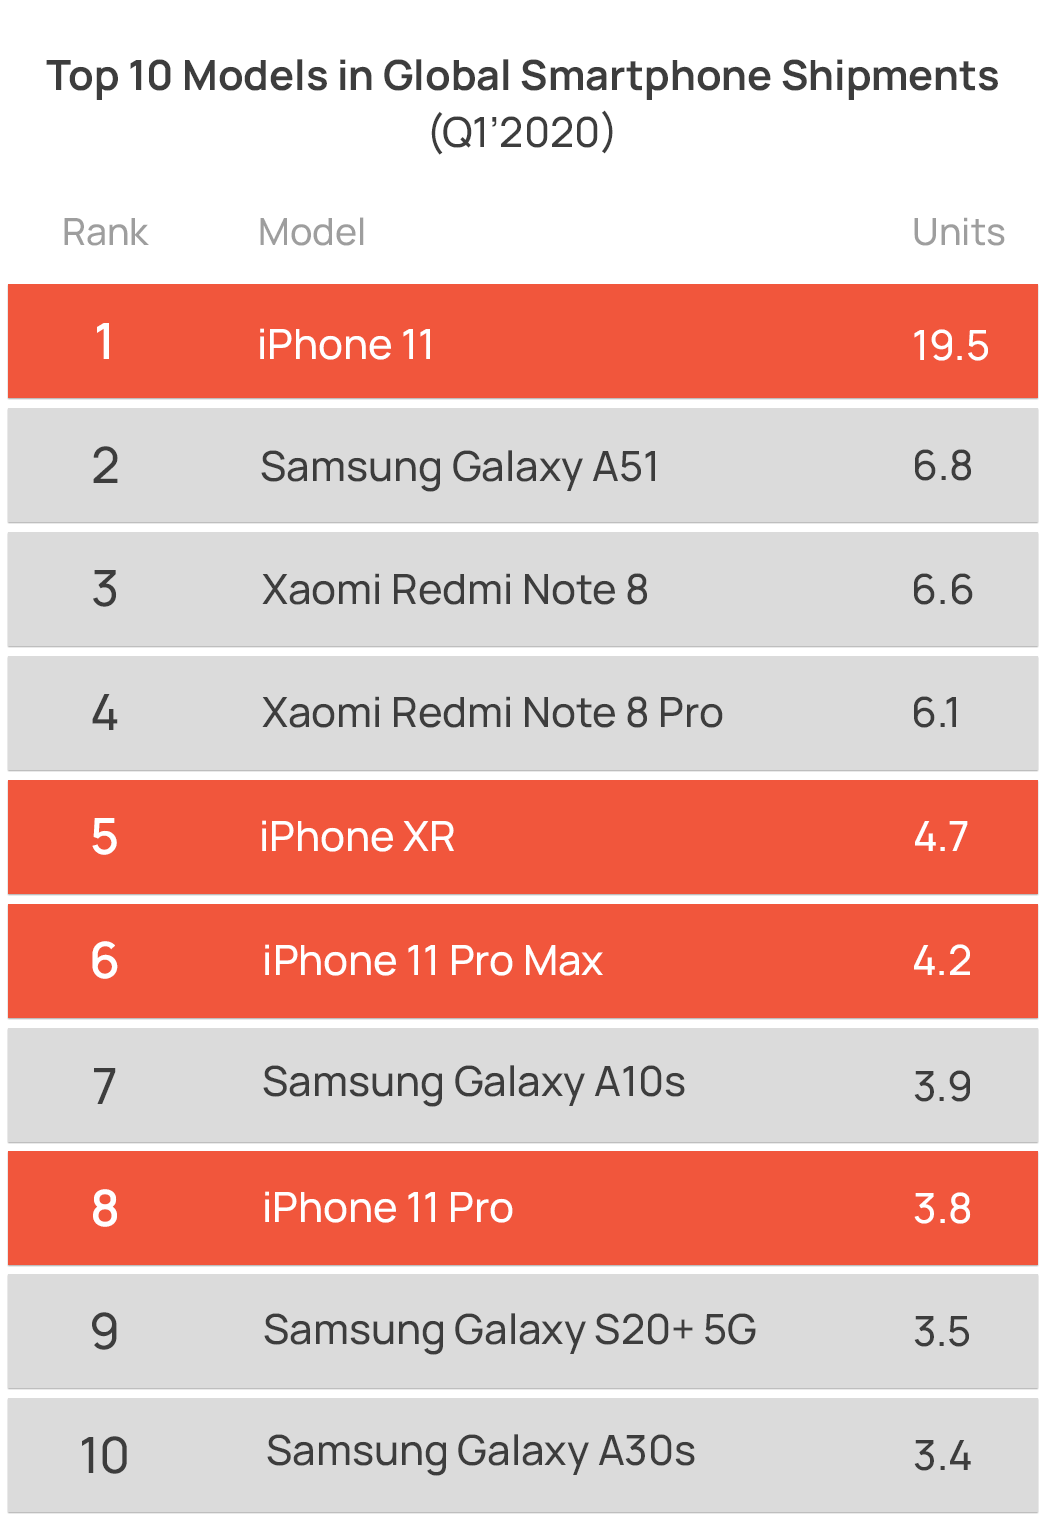 Chart showing top global smartphone model shipments